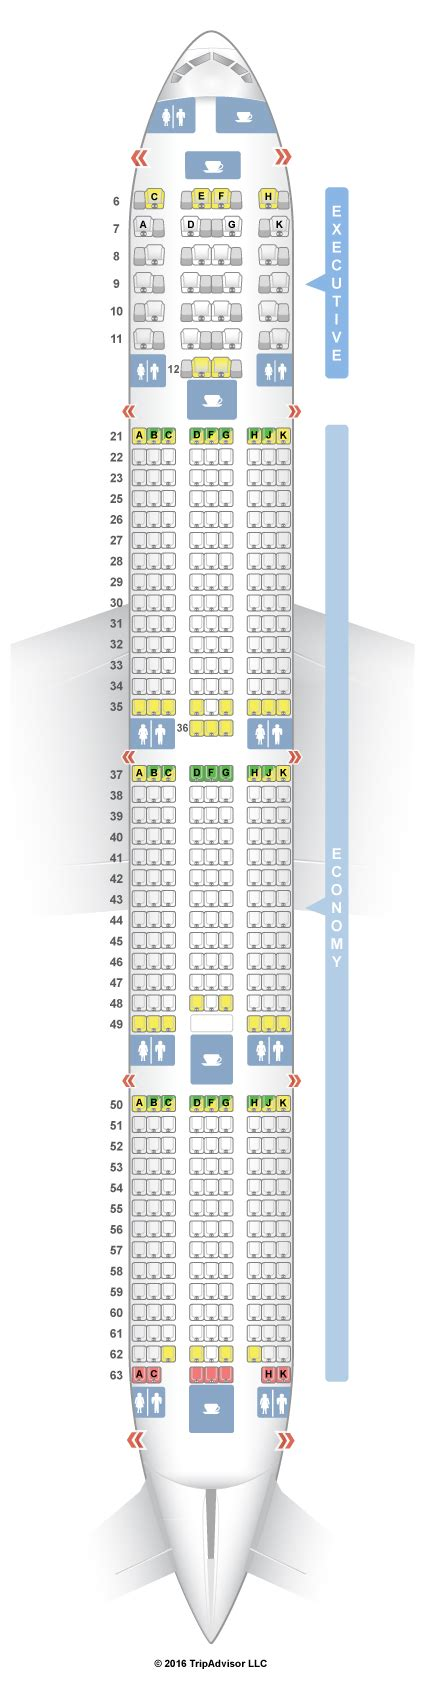 seatguru seat map garuda indonesia